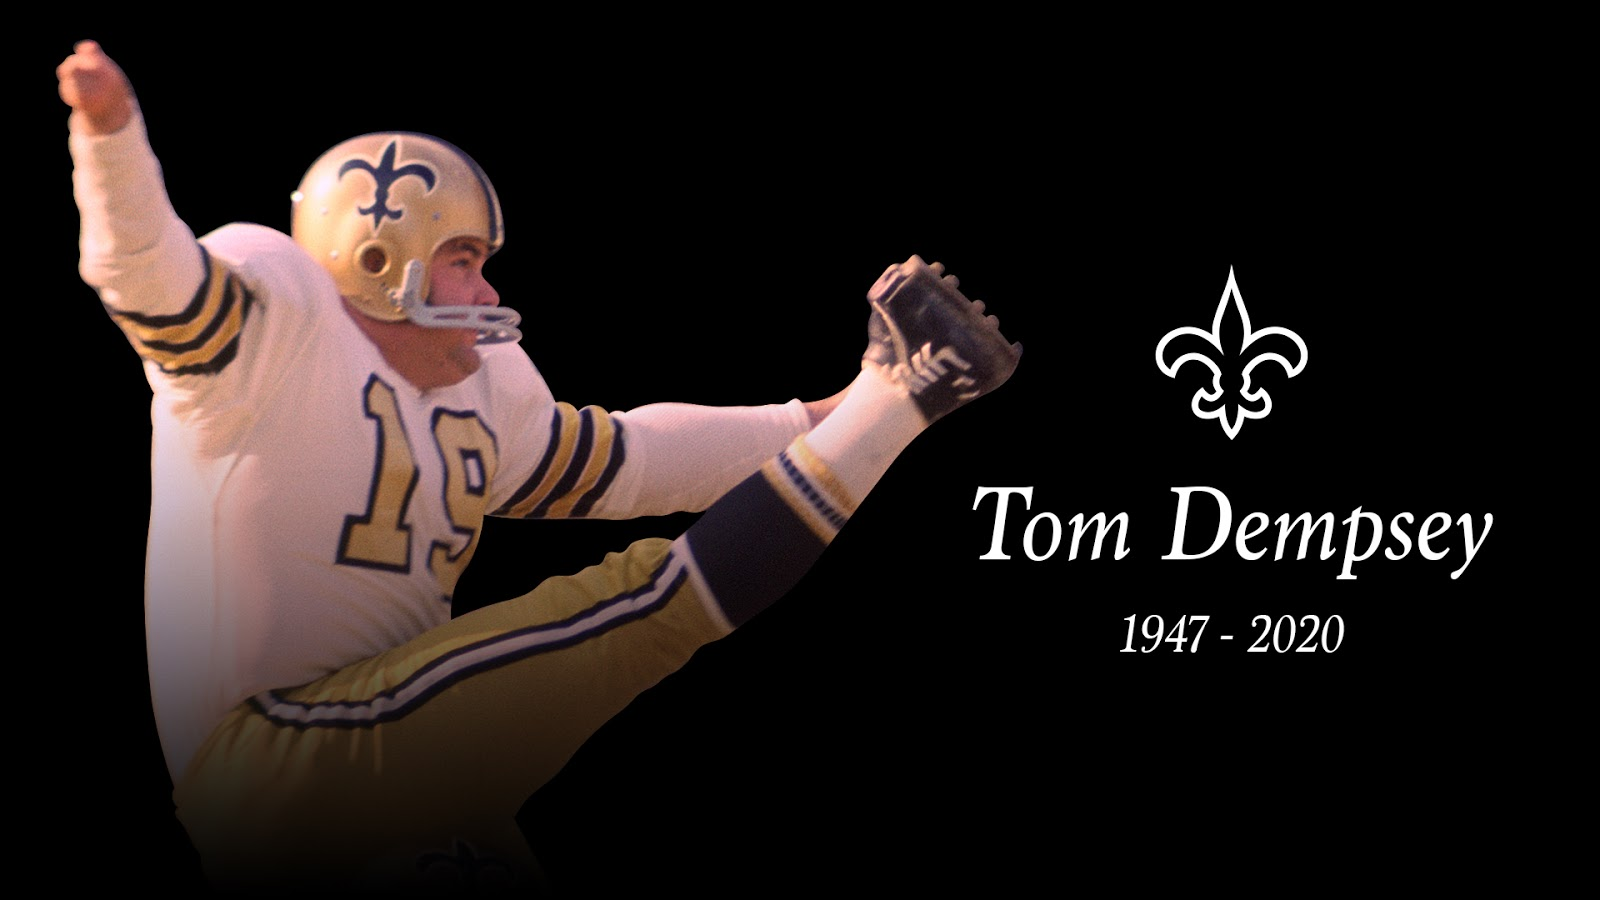 Tom Dempsey Died of Coronavirus Infection, Bio, Wiki, Age, Career, Wife, Net Worth